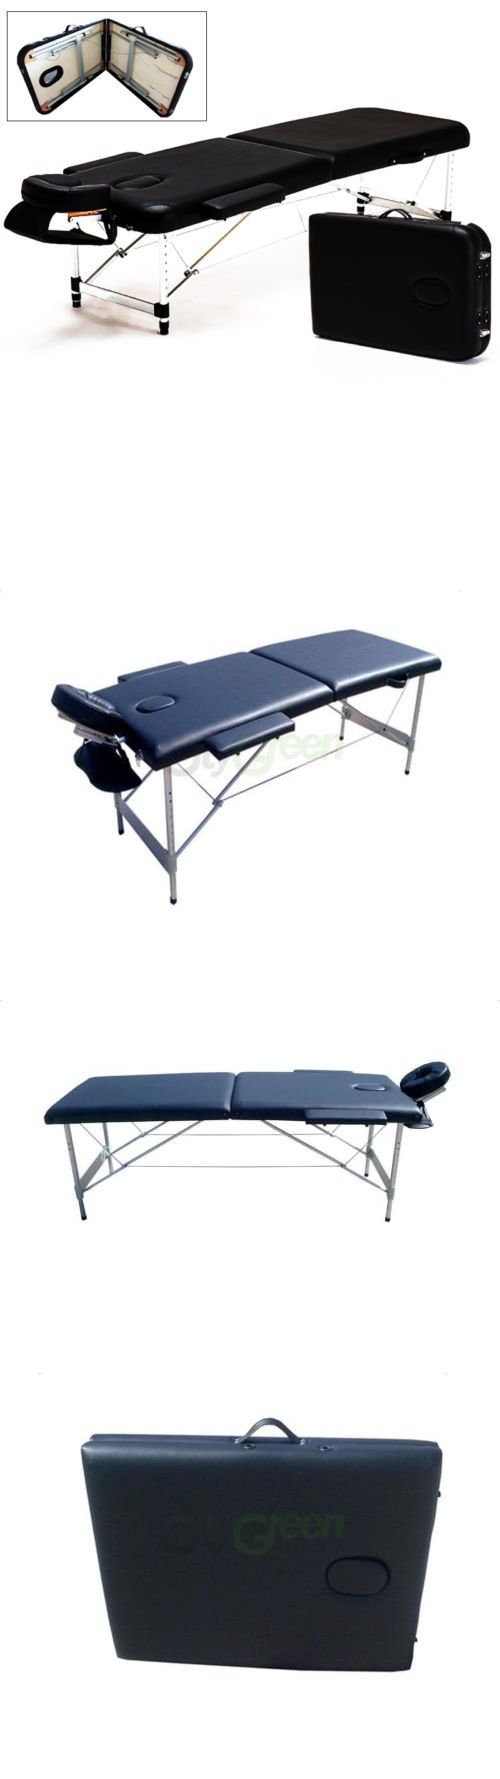 Massage Tables and Chairs: Portable 2 Fold Aluminum Massage Table Salon Spa Bed Facial Tattoo W Carry Case -> BUY IT NOW ONLY: $79.9 on eBay!